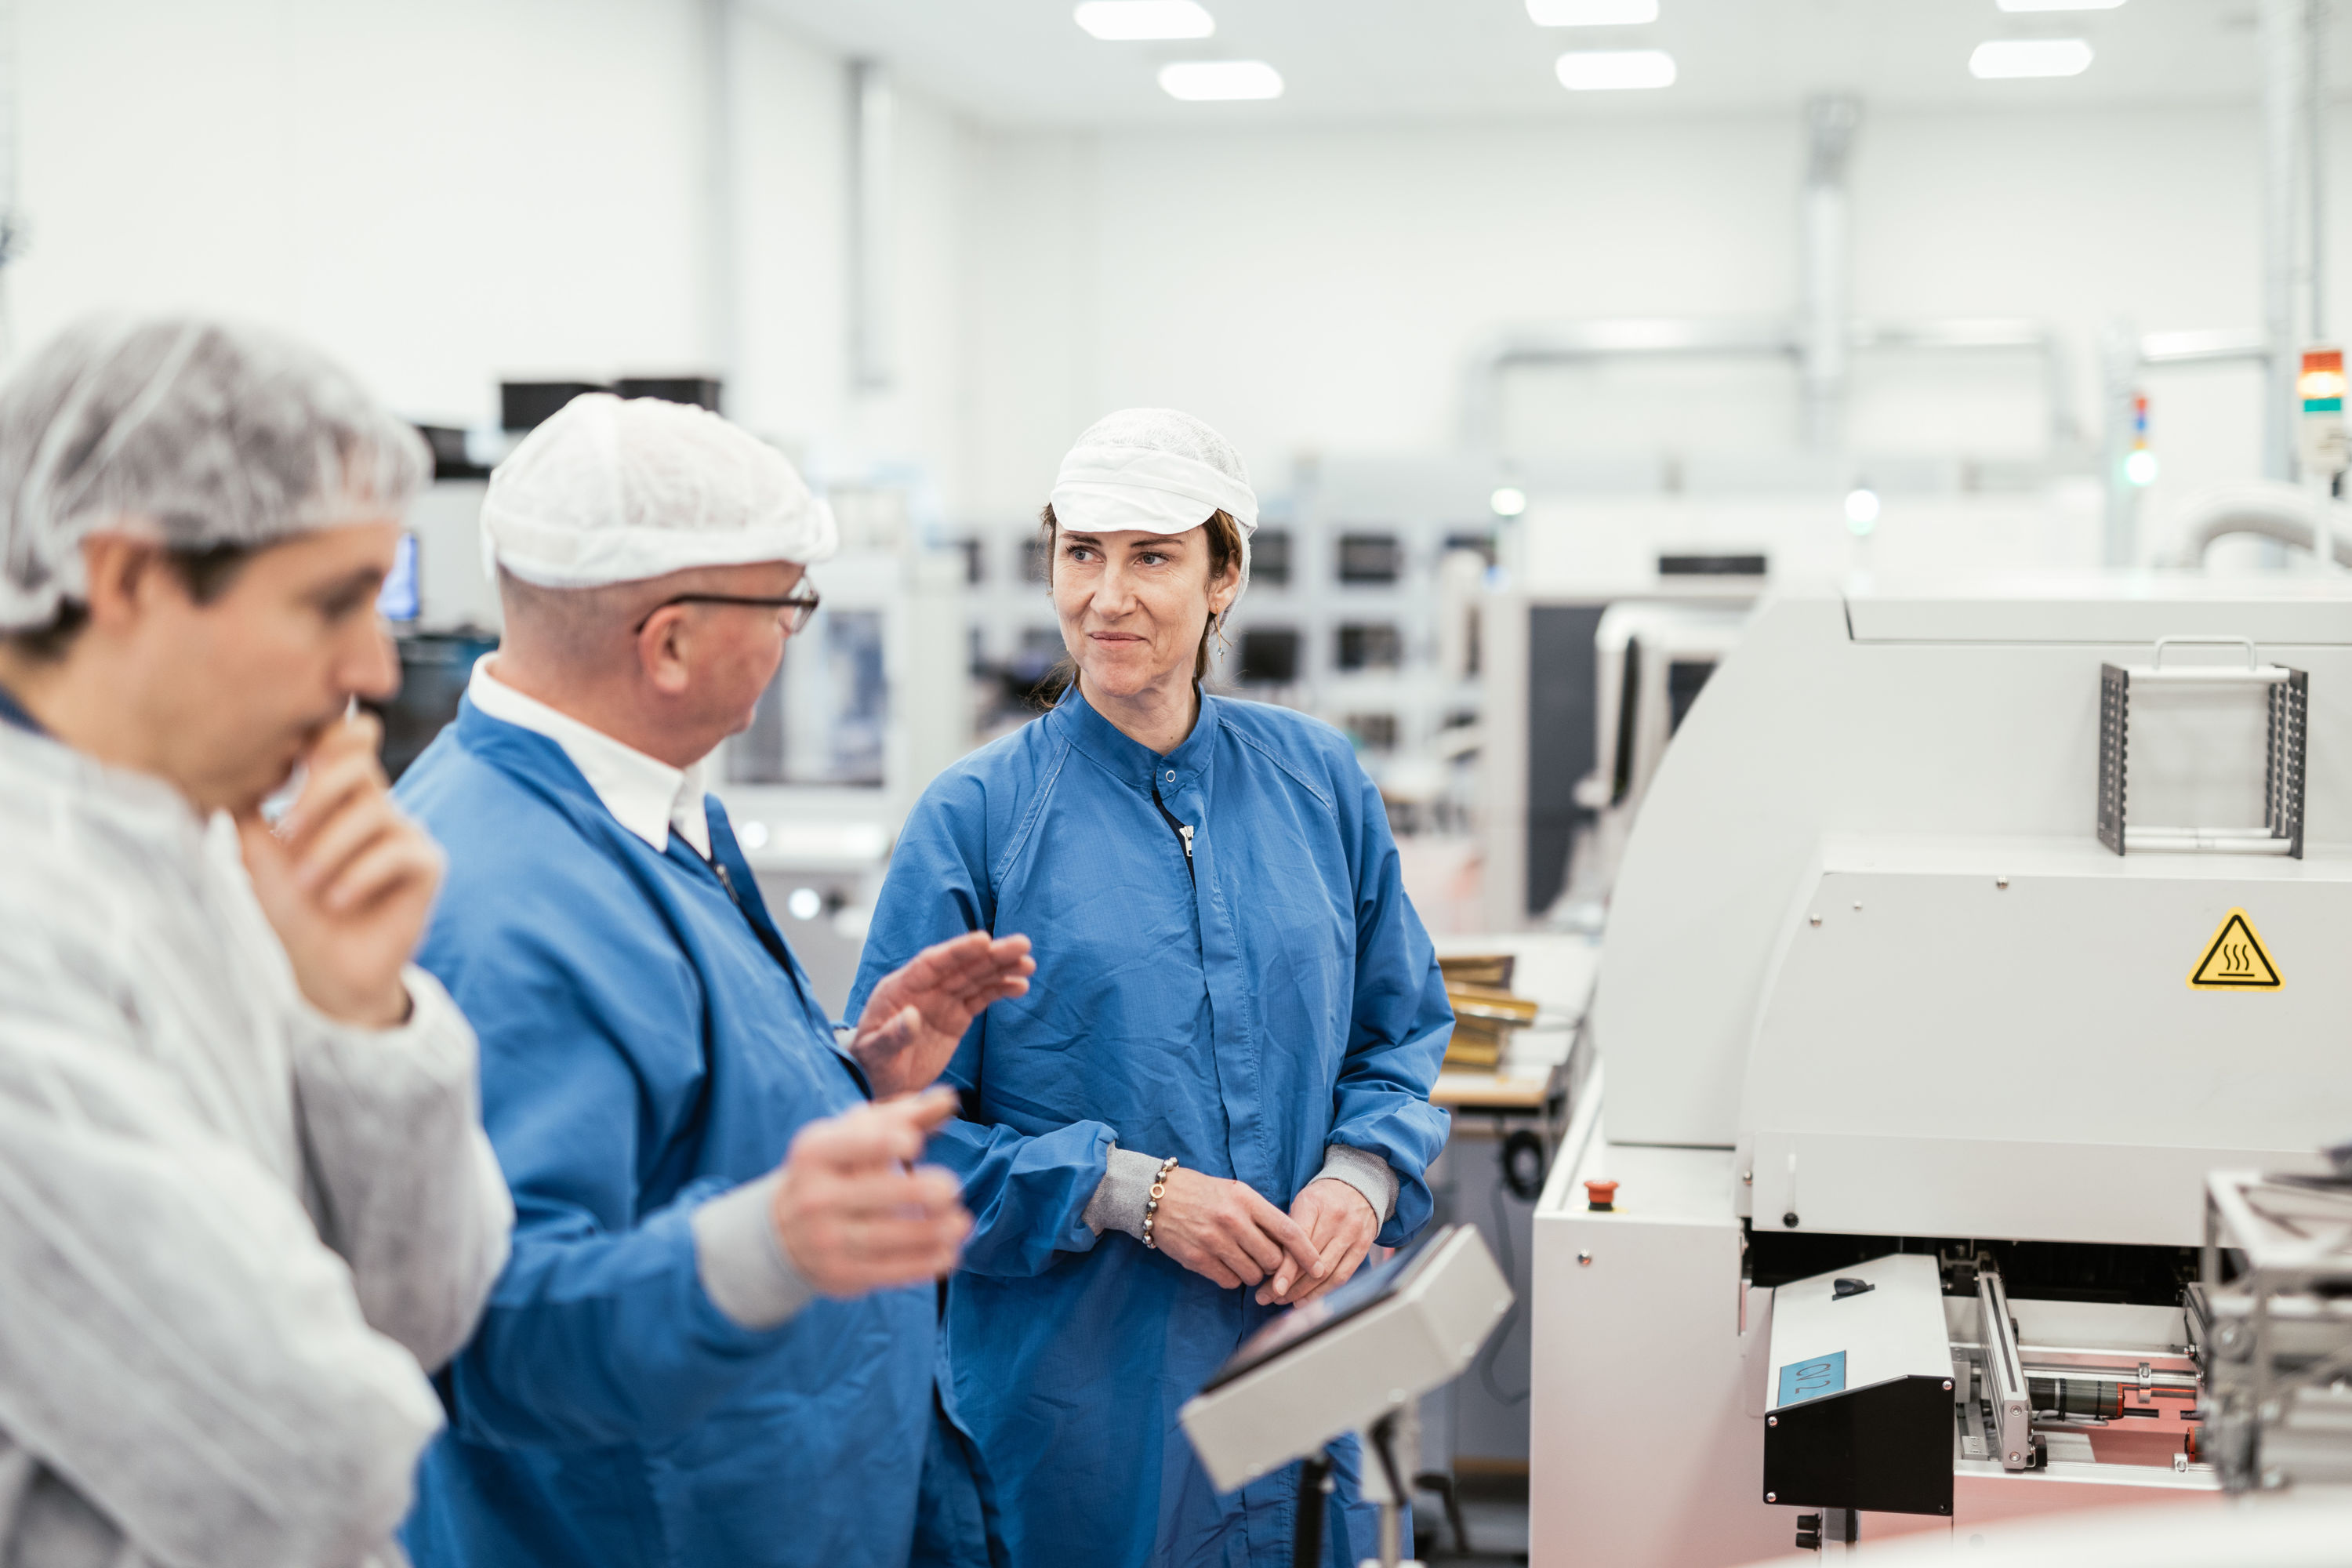 Morten Andersen, VP, Component Manufacturing, explains to Gitte Aabo, CEO, GN Hearing, the processes involved in manufacturing hearing aid chips and plastics at GN Hearing's facility in Præstø